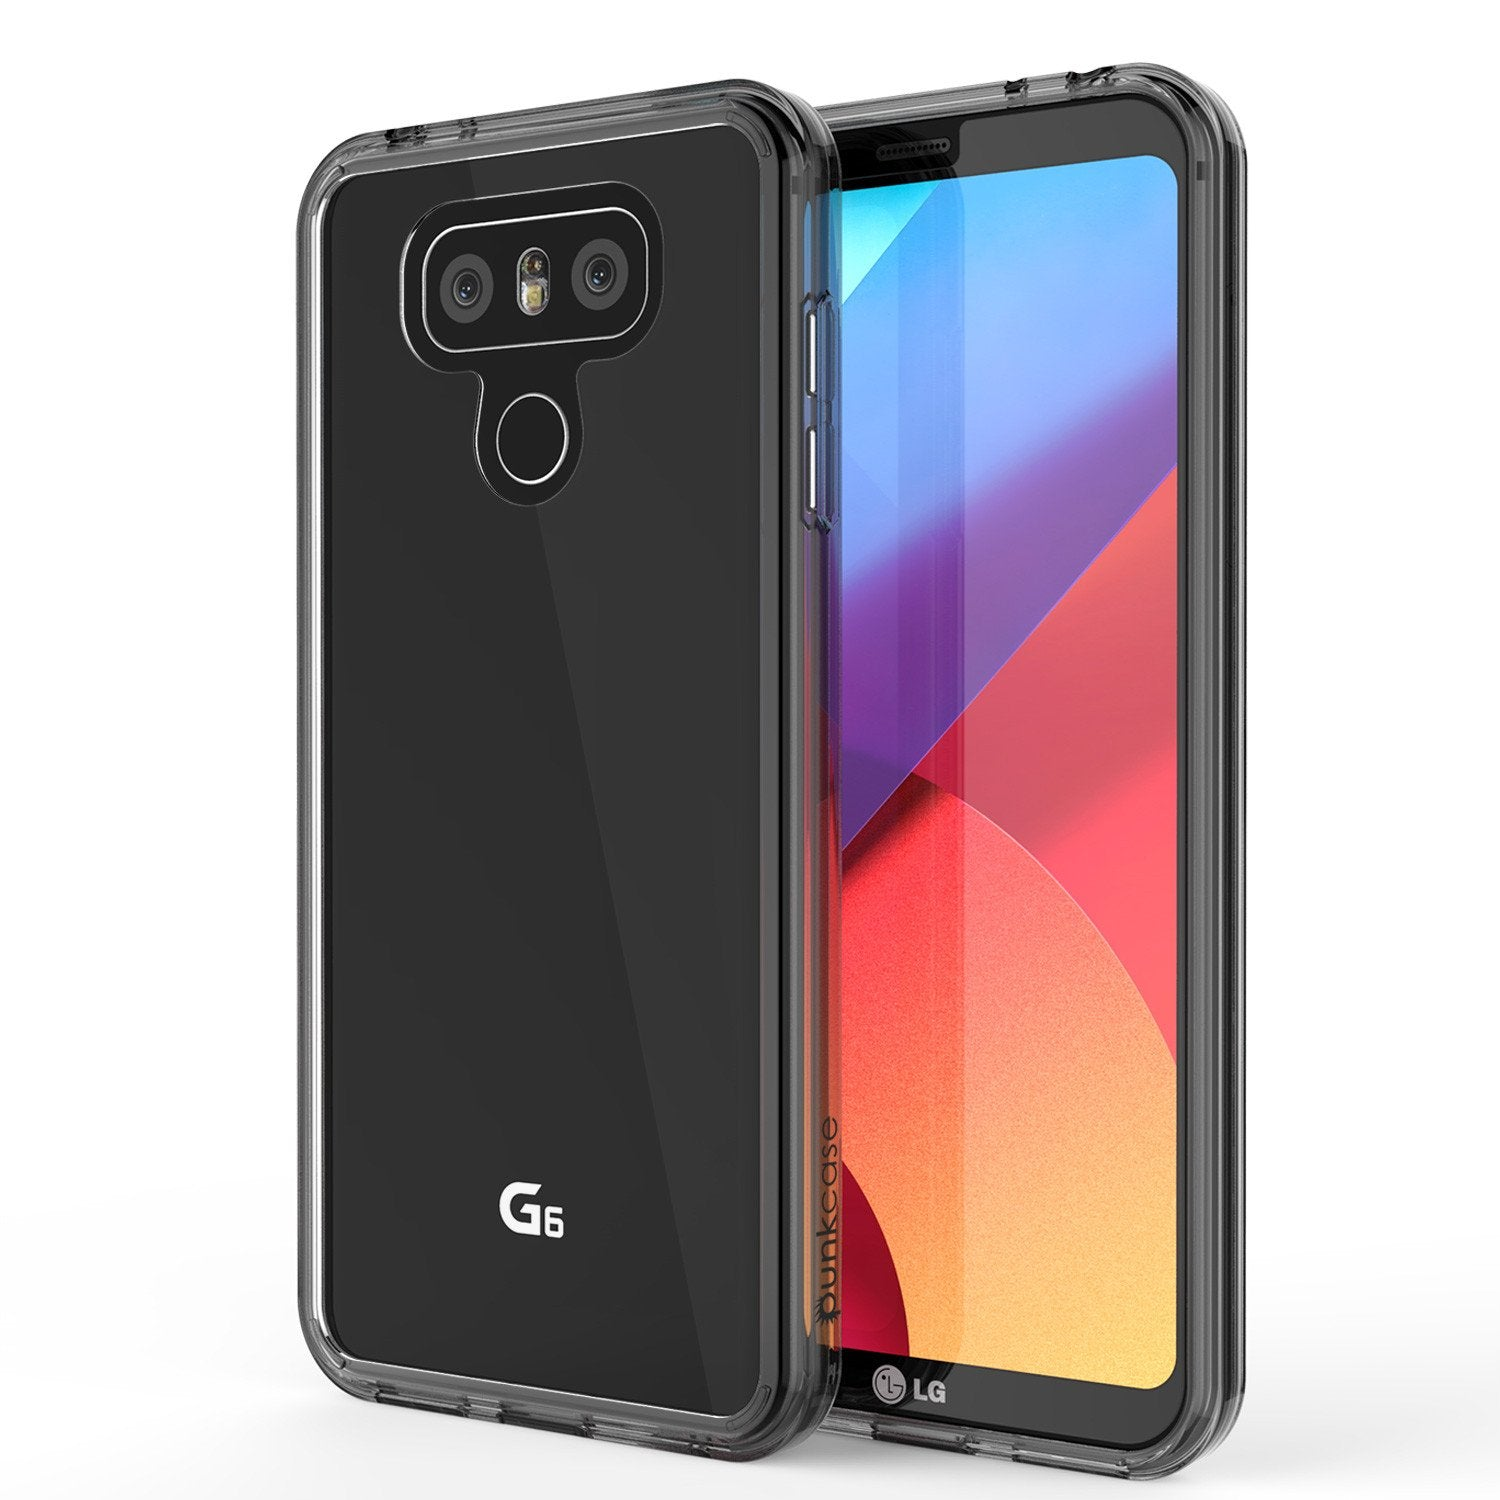 LG G6 Case Punkcase® LUCID 2.0 Crystal Black Series w/ PUNK SHIELD Screen Protector | Ultra Fit